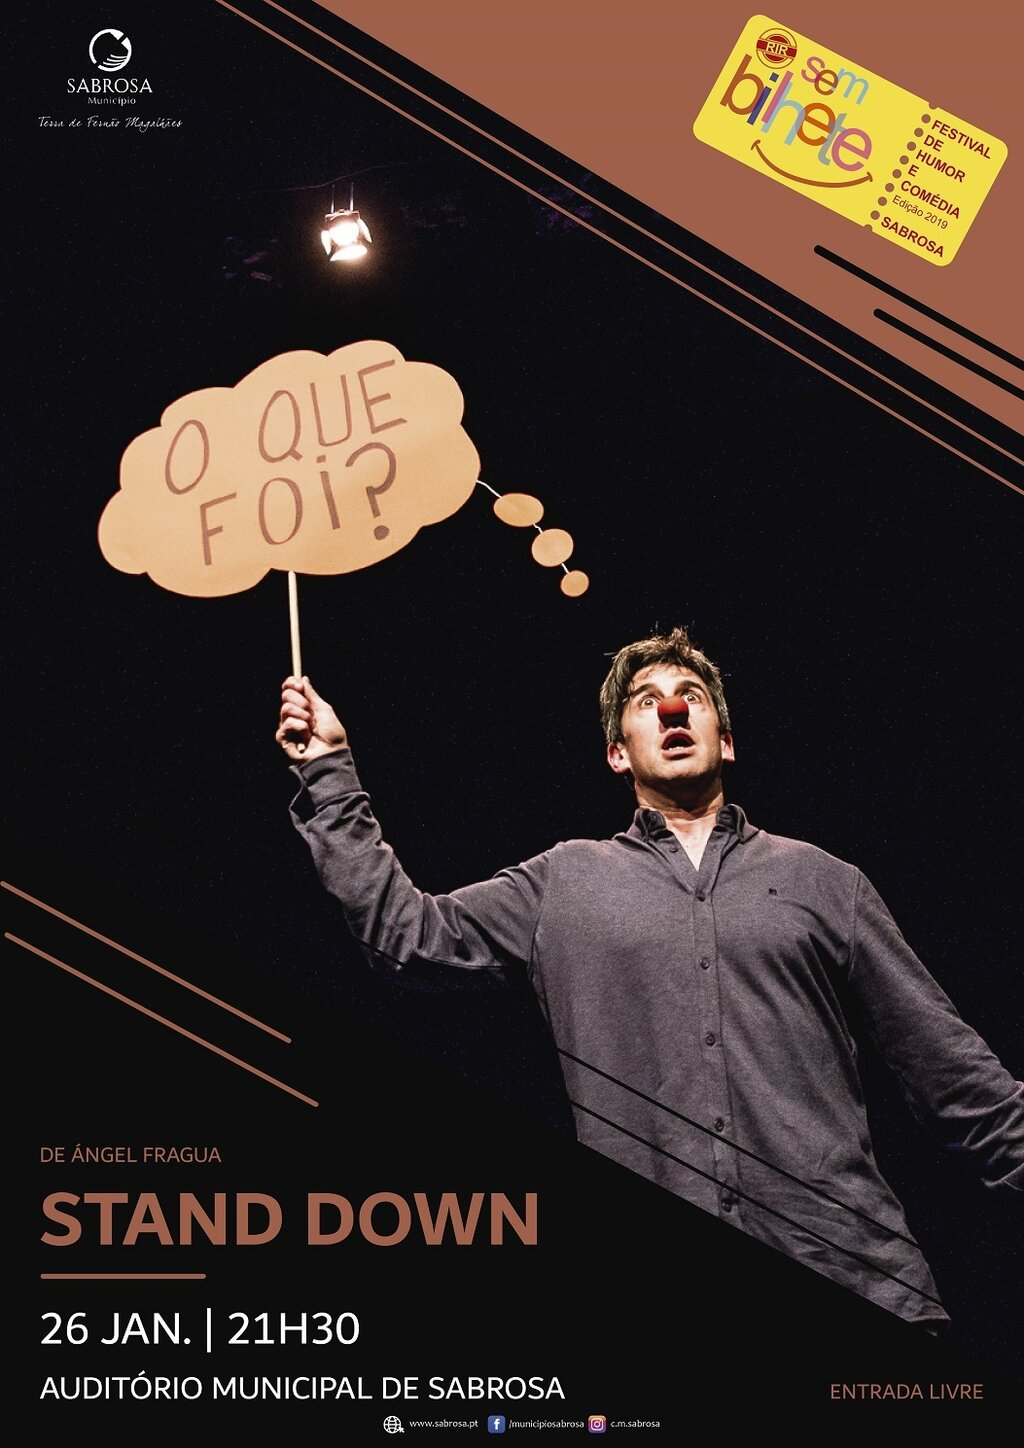 Stand down 2019 web 1 1024 2500